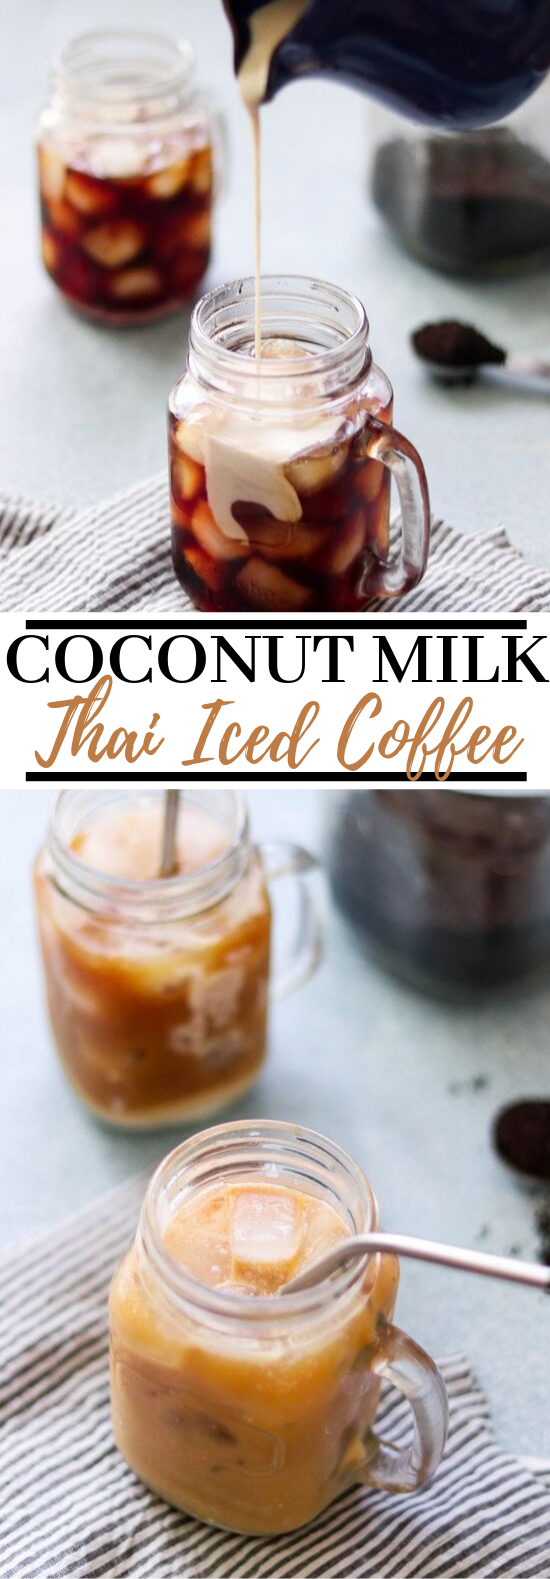 Coconut Milk Thai Iced Coffee #drinks #coffee